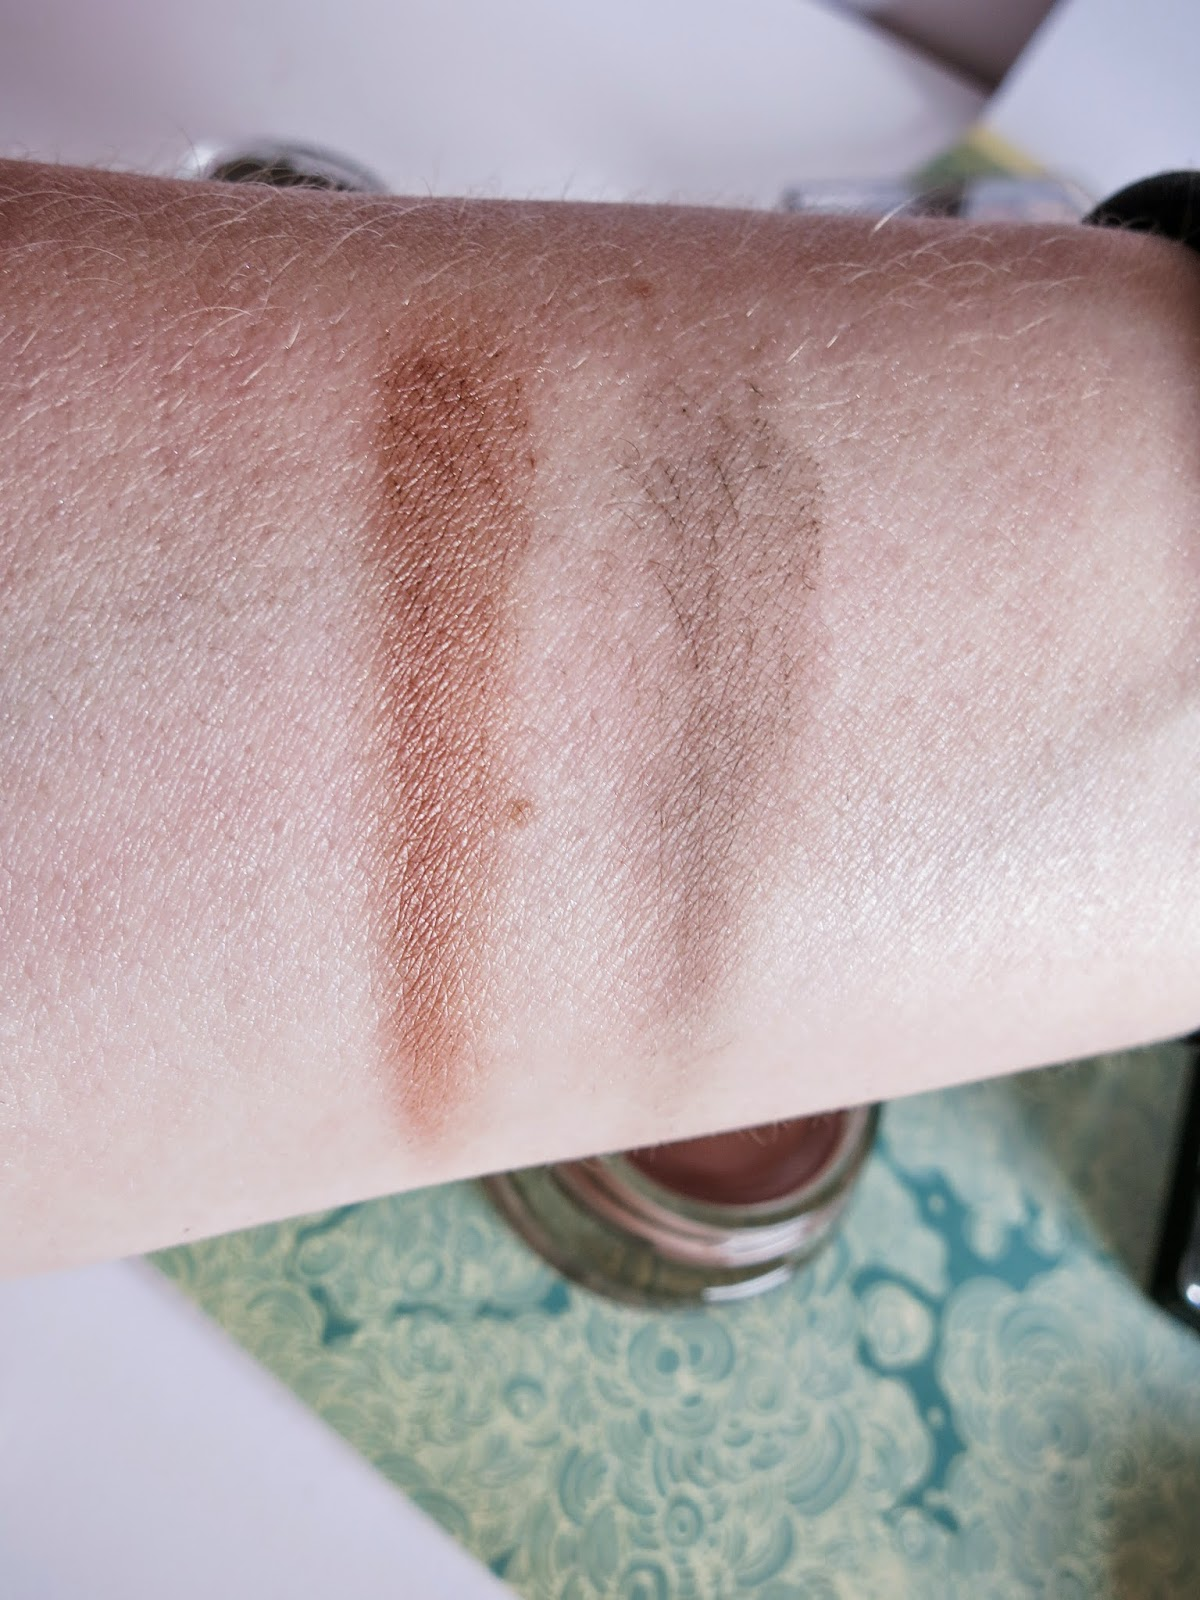 maybelline color tattoos leather shadows UK review